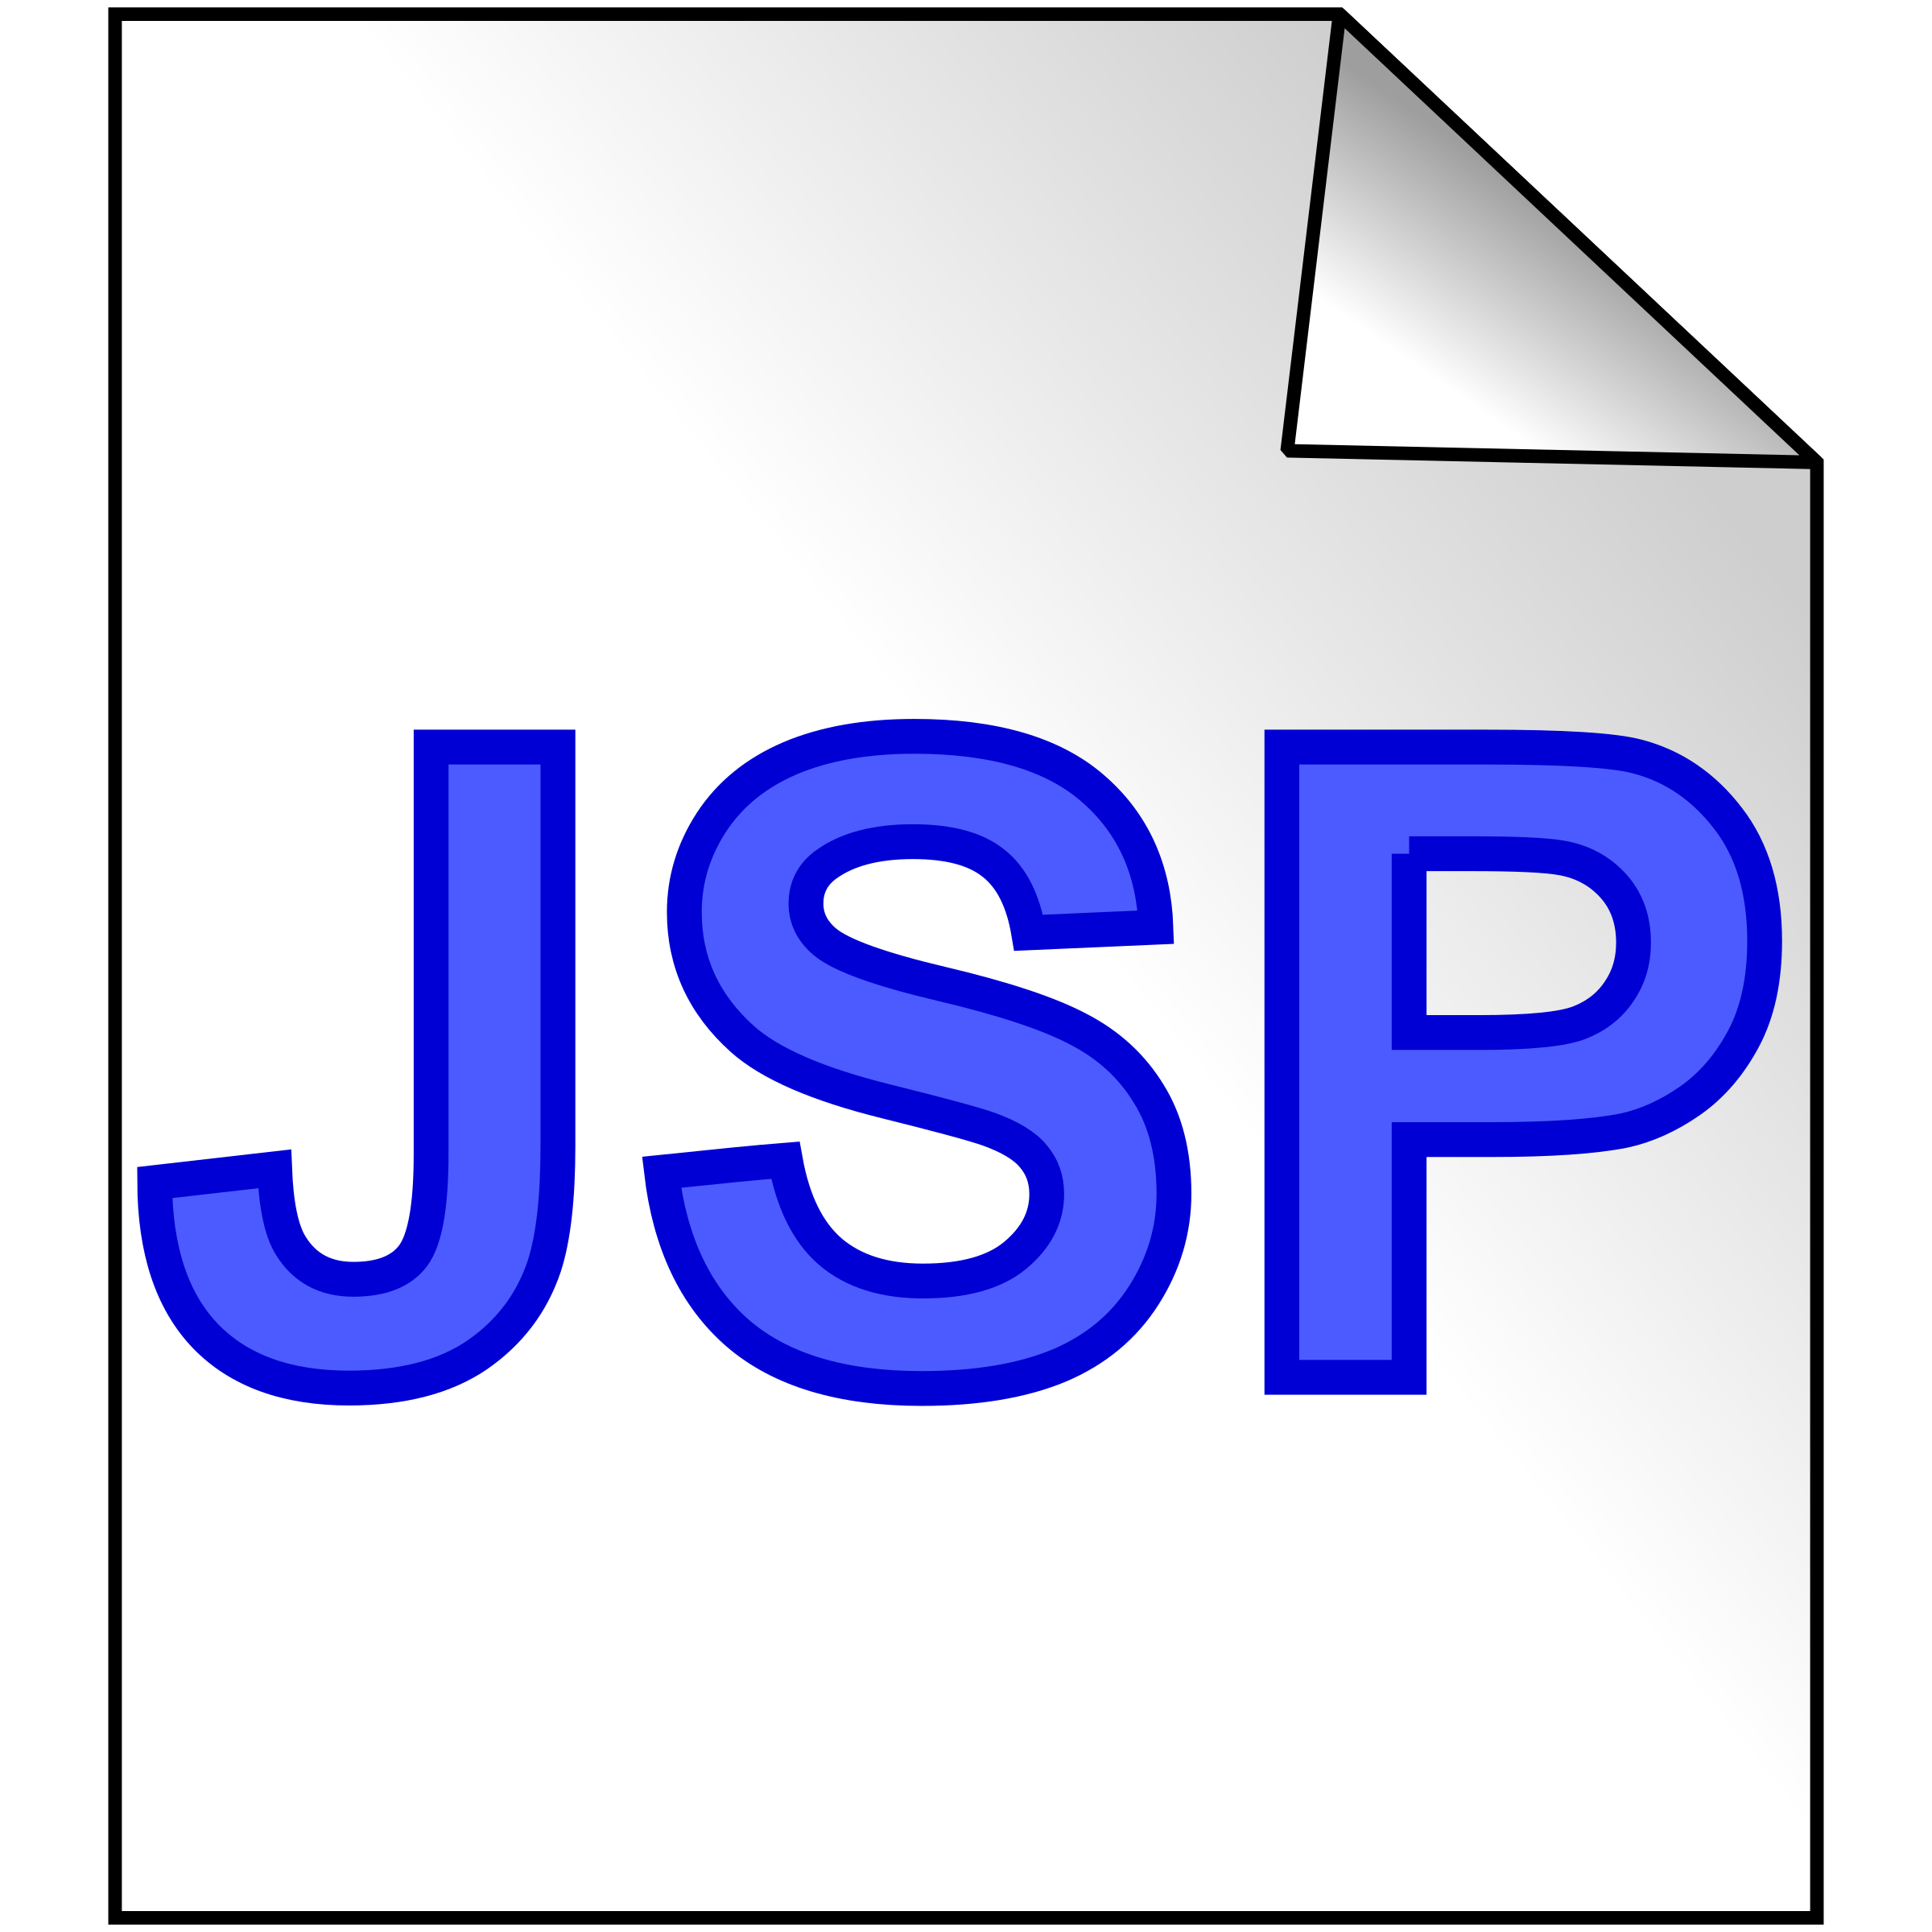 jsp page by computating